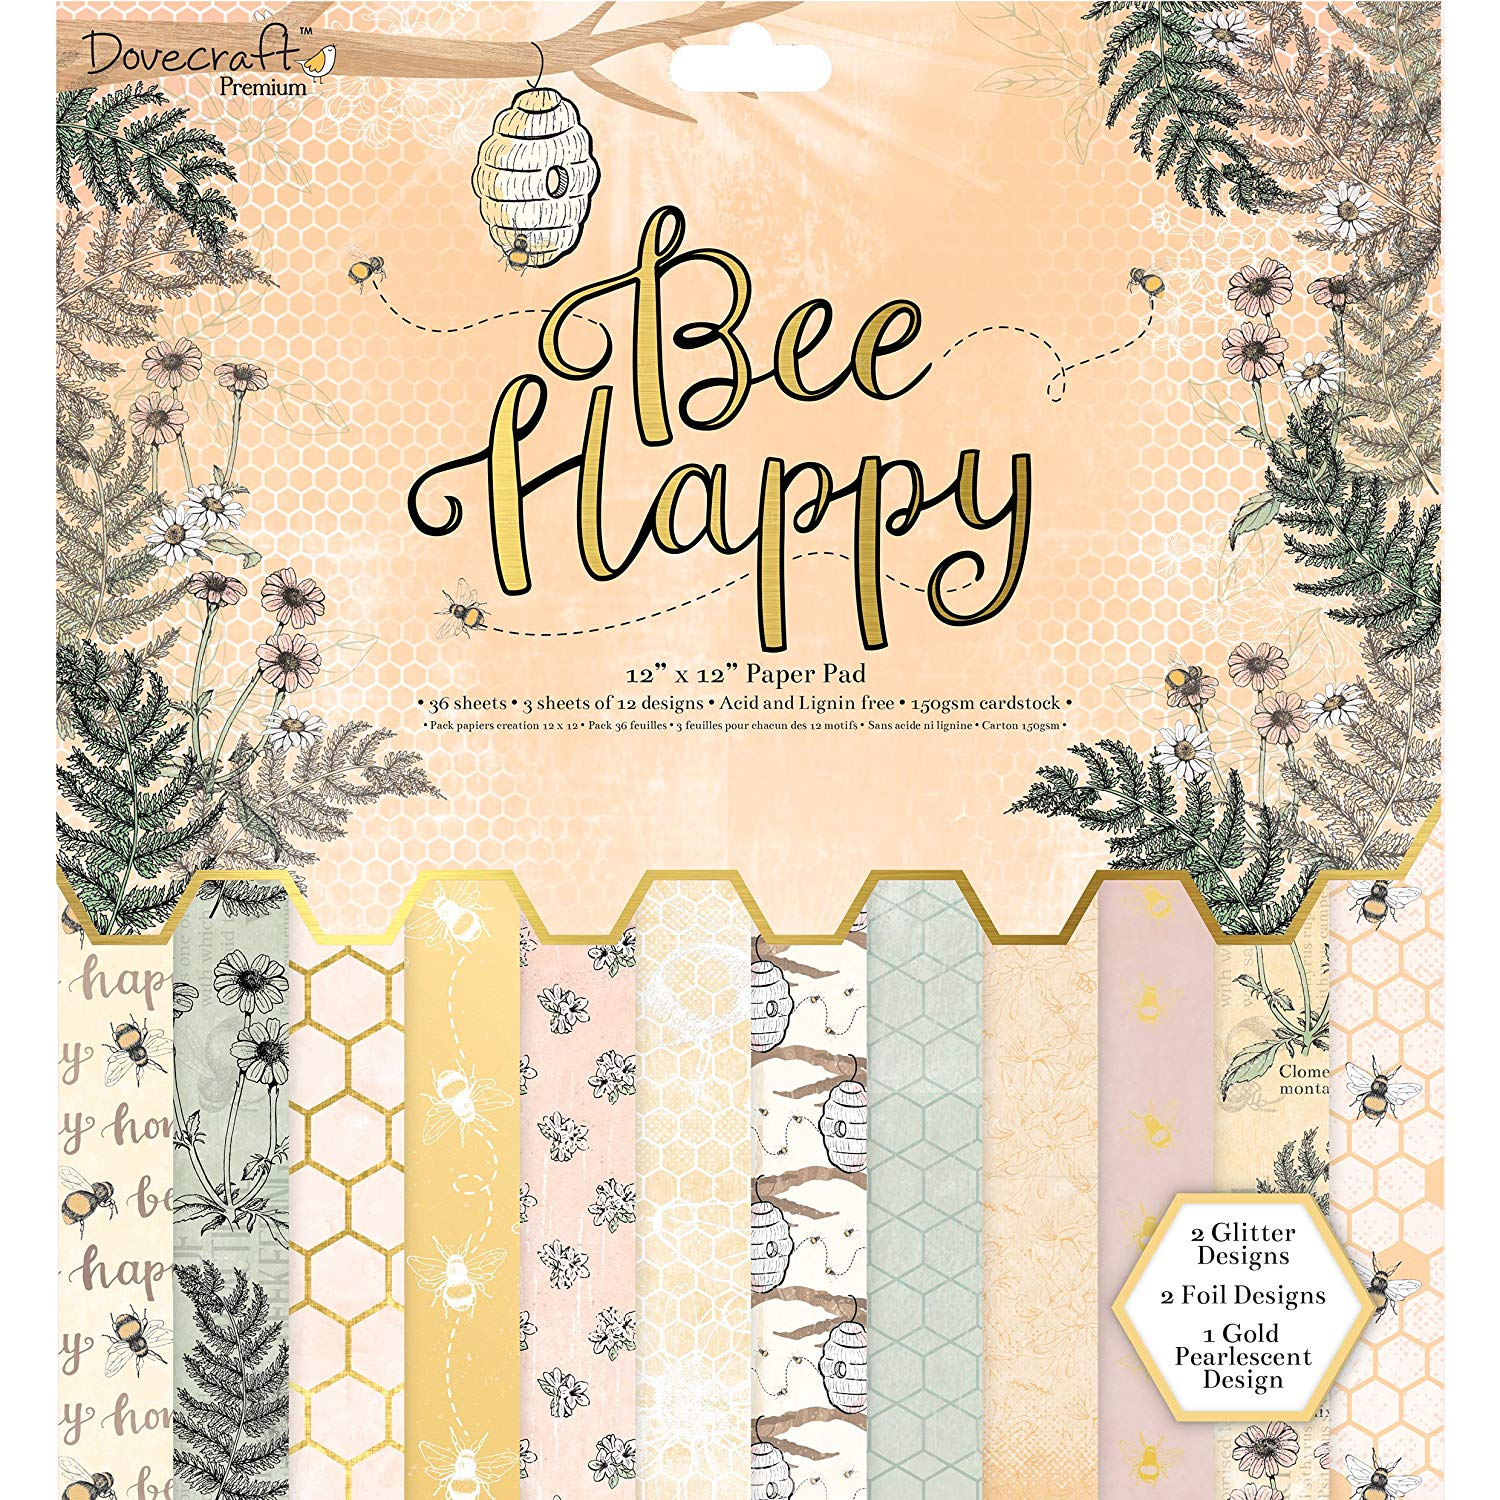 "Dovecraft Premium Bee Happy Paper Craft Collection - 12x12"" Paper Pad"